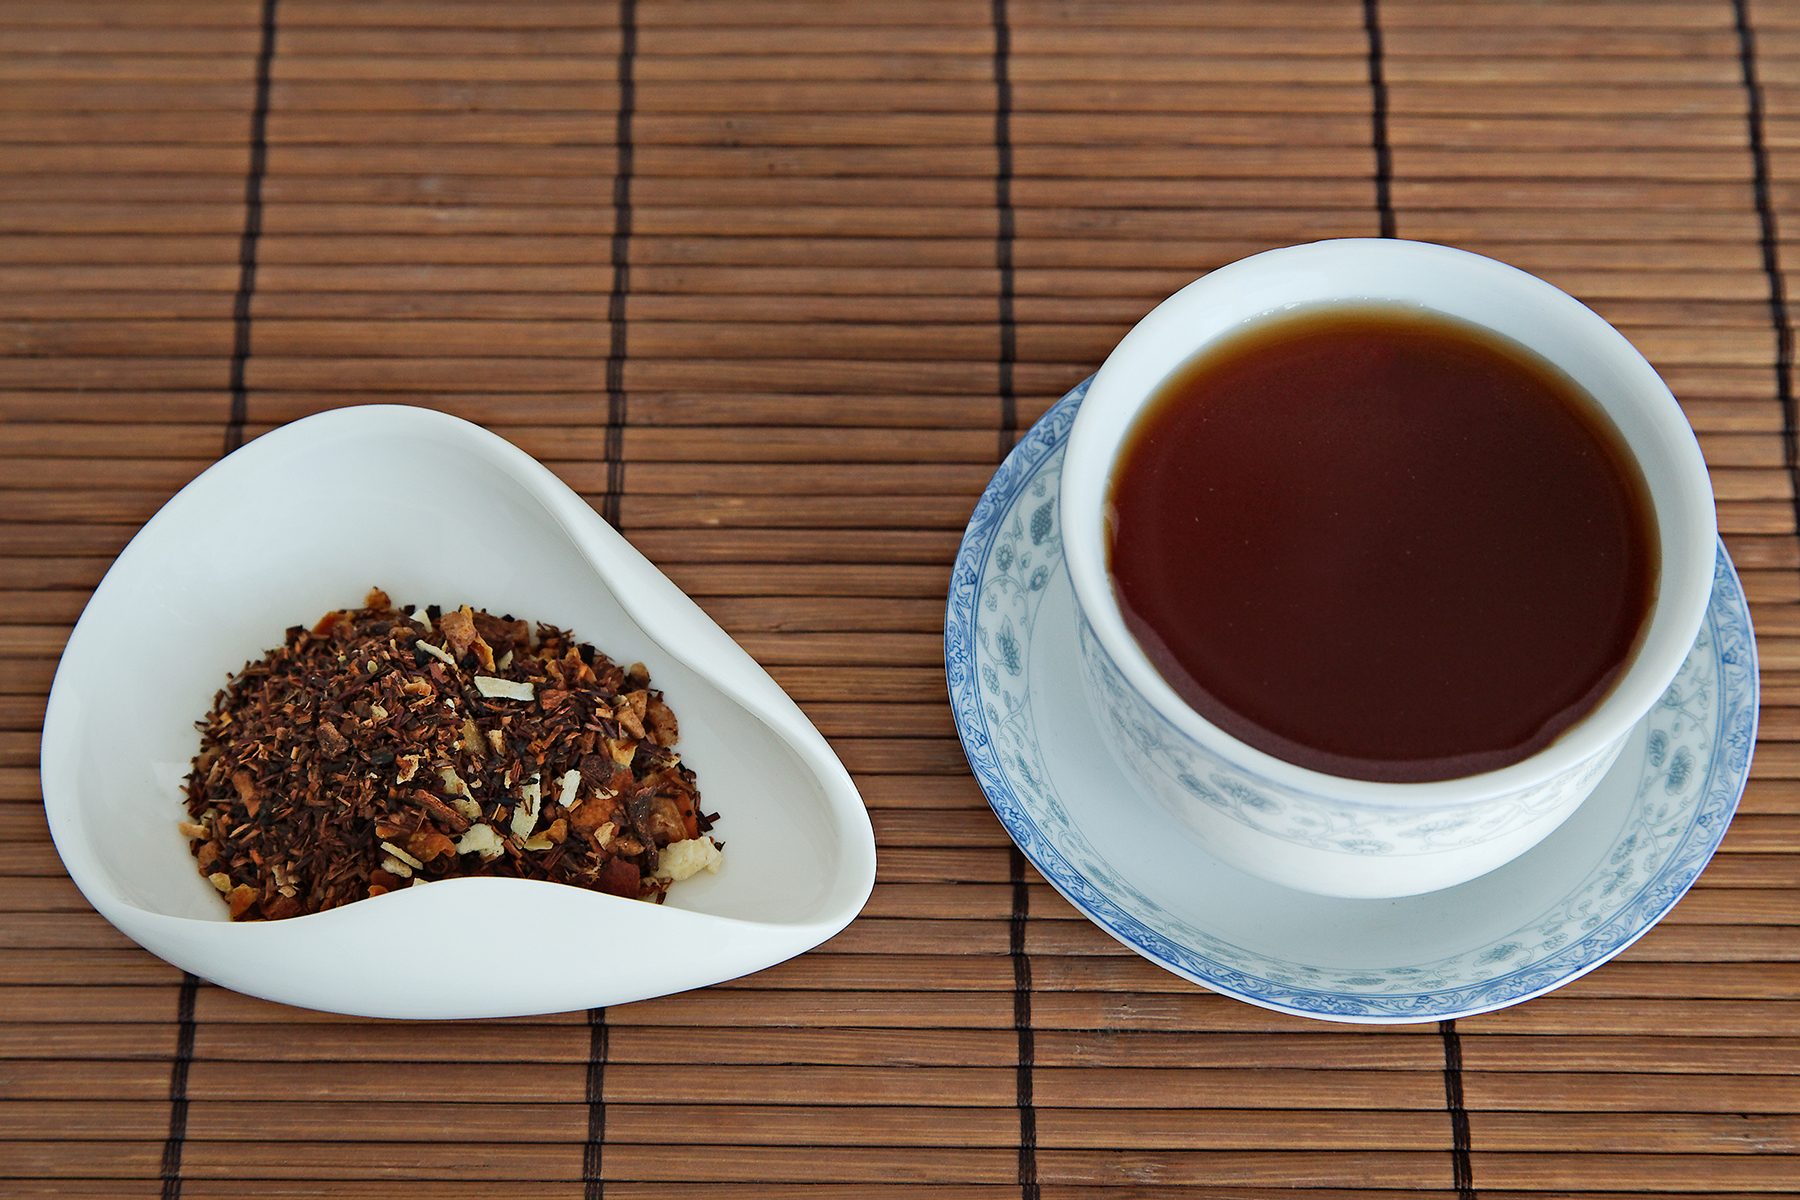 Tea Review: Carrot Cake Rooibos - Fusion Teas